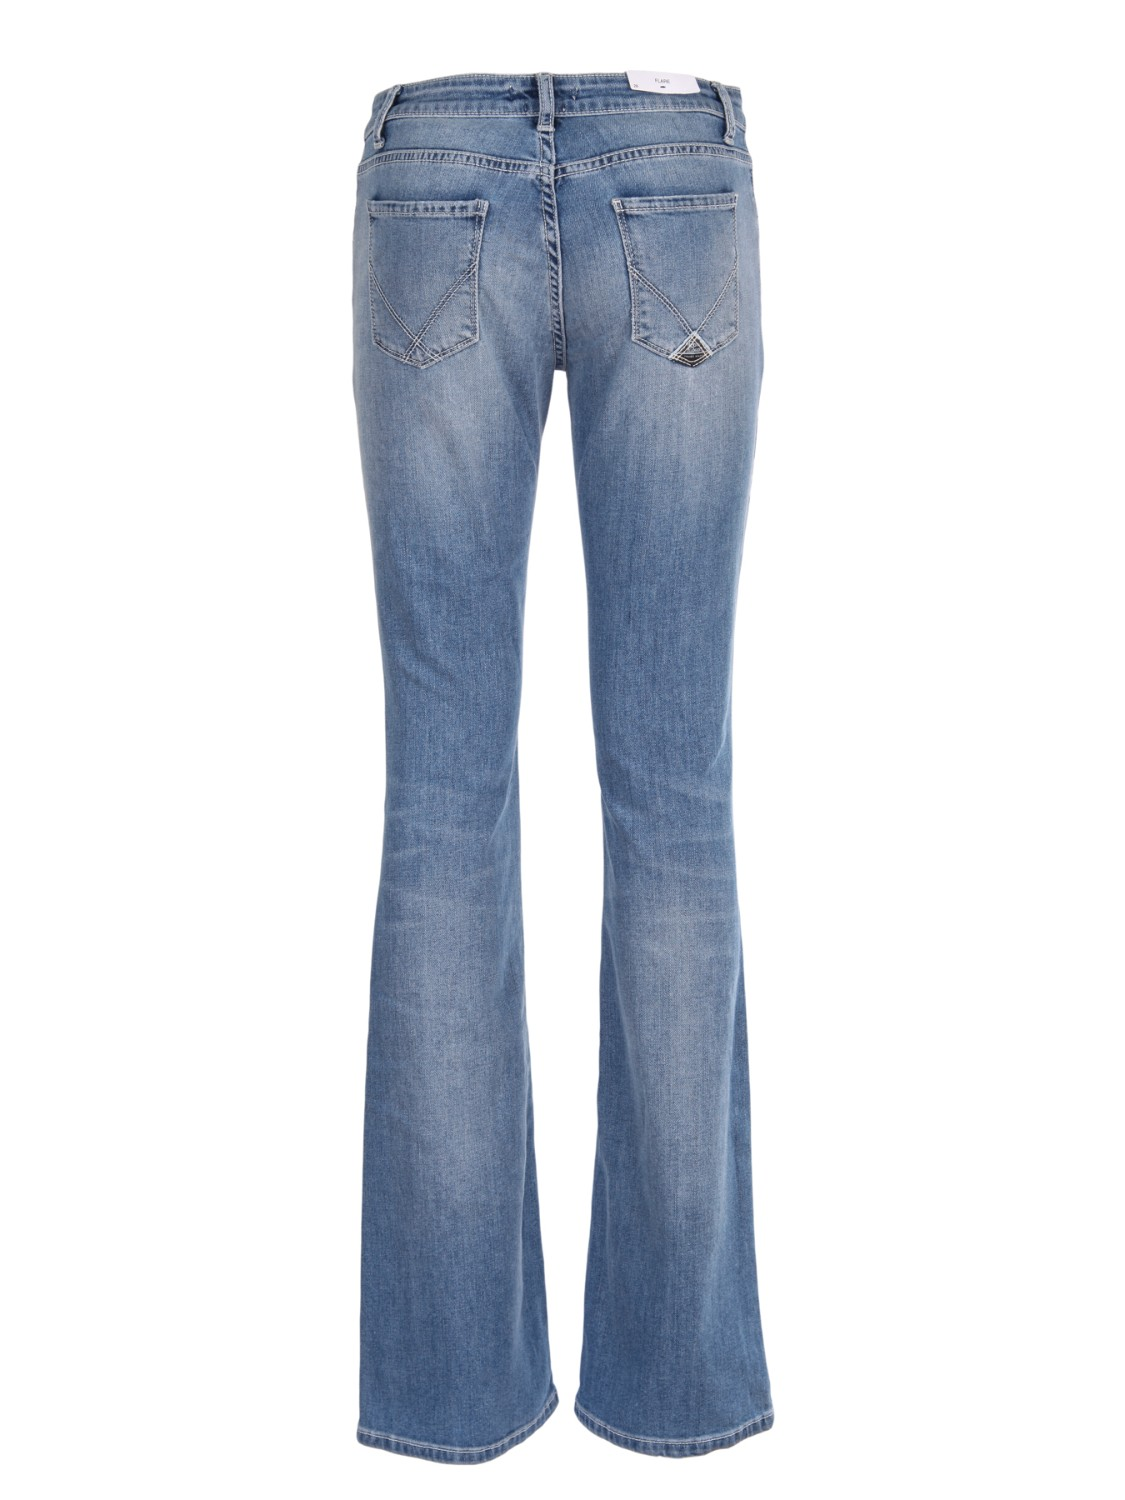 shop ROY ROGER'S  Jeans: Roy Roger's jeans elasticizzato. Con strappi. Gamba a zampa. Composizione: 98% cotone 2% elastan. Made in Italy.. MEL WOMAN-D number 5198925